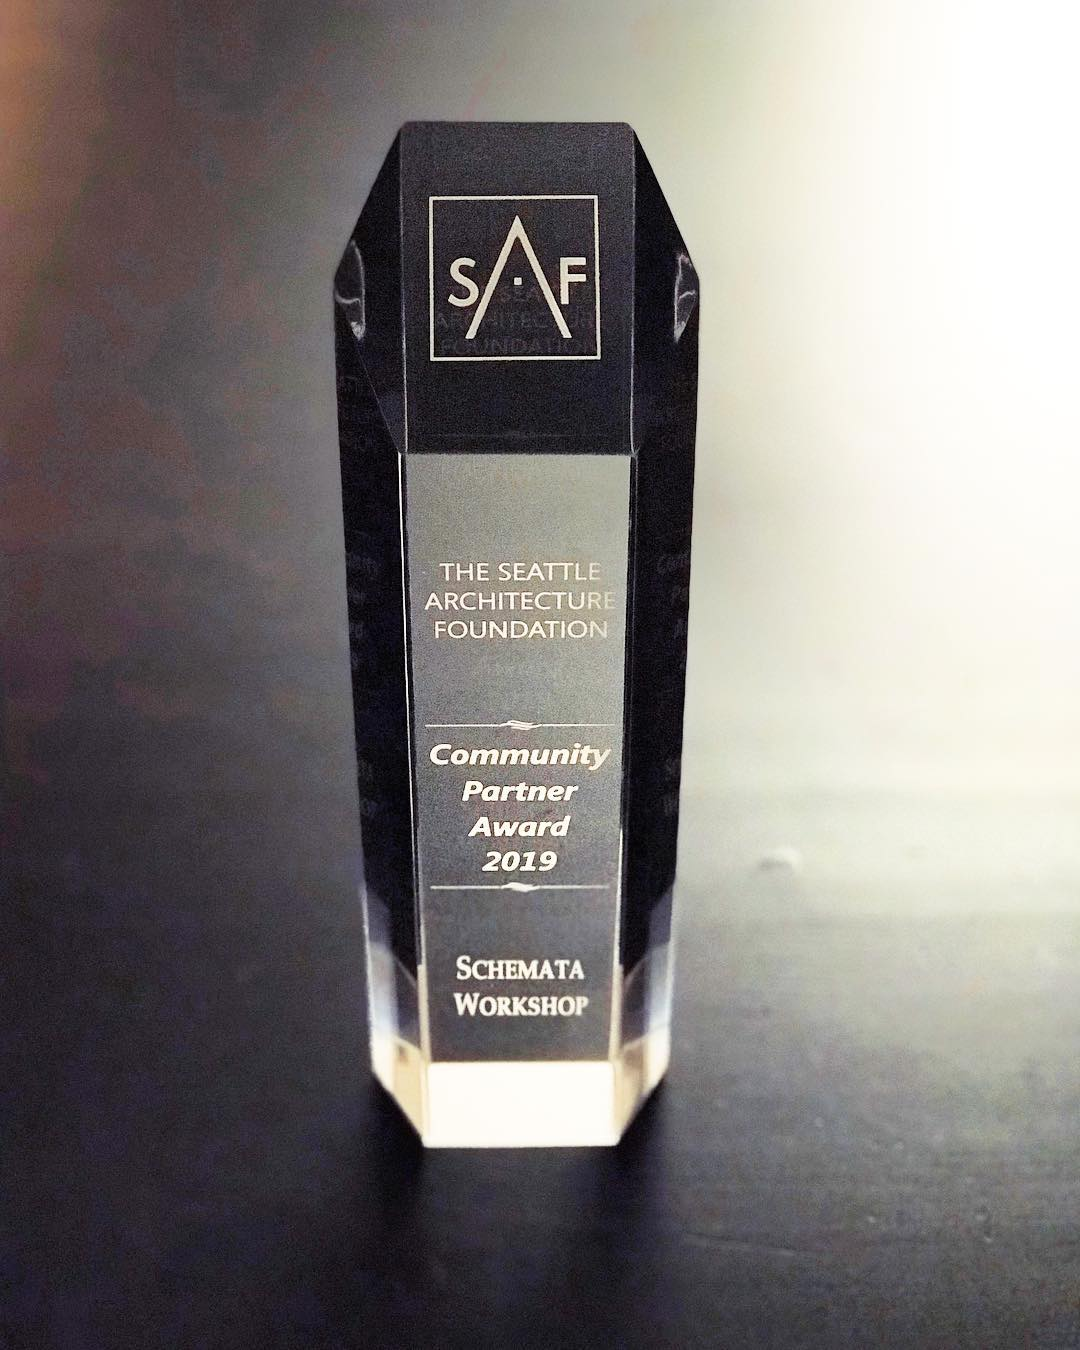 SAF Community Partner Award - 2019